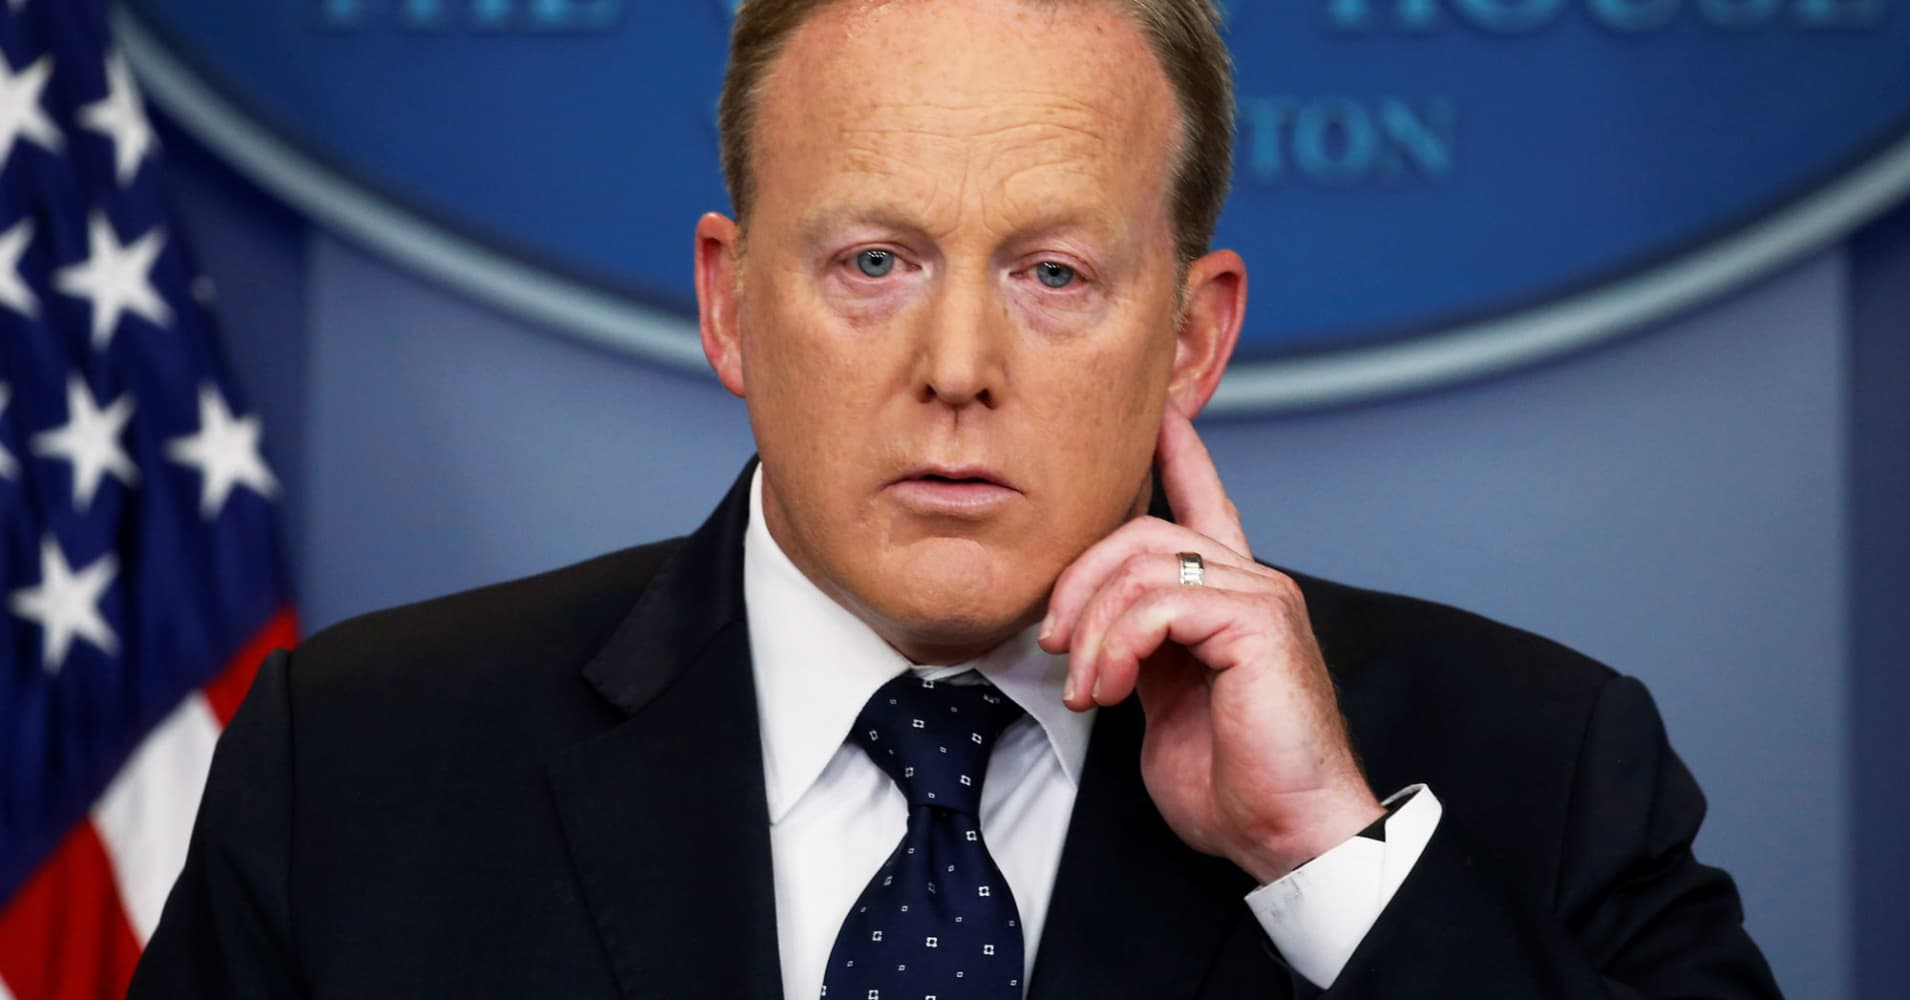 sean spicer resigns as white house press secretary after objecting